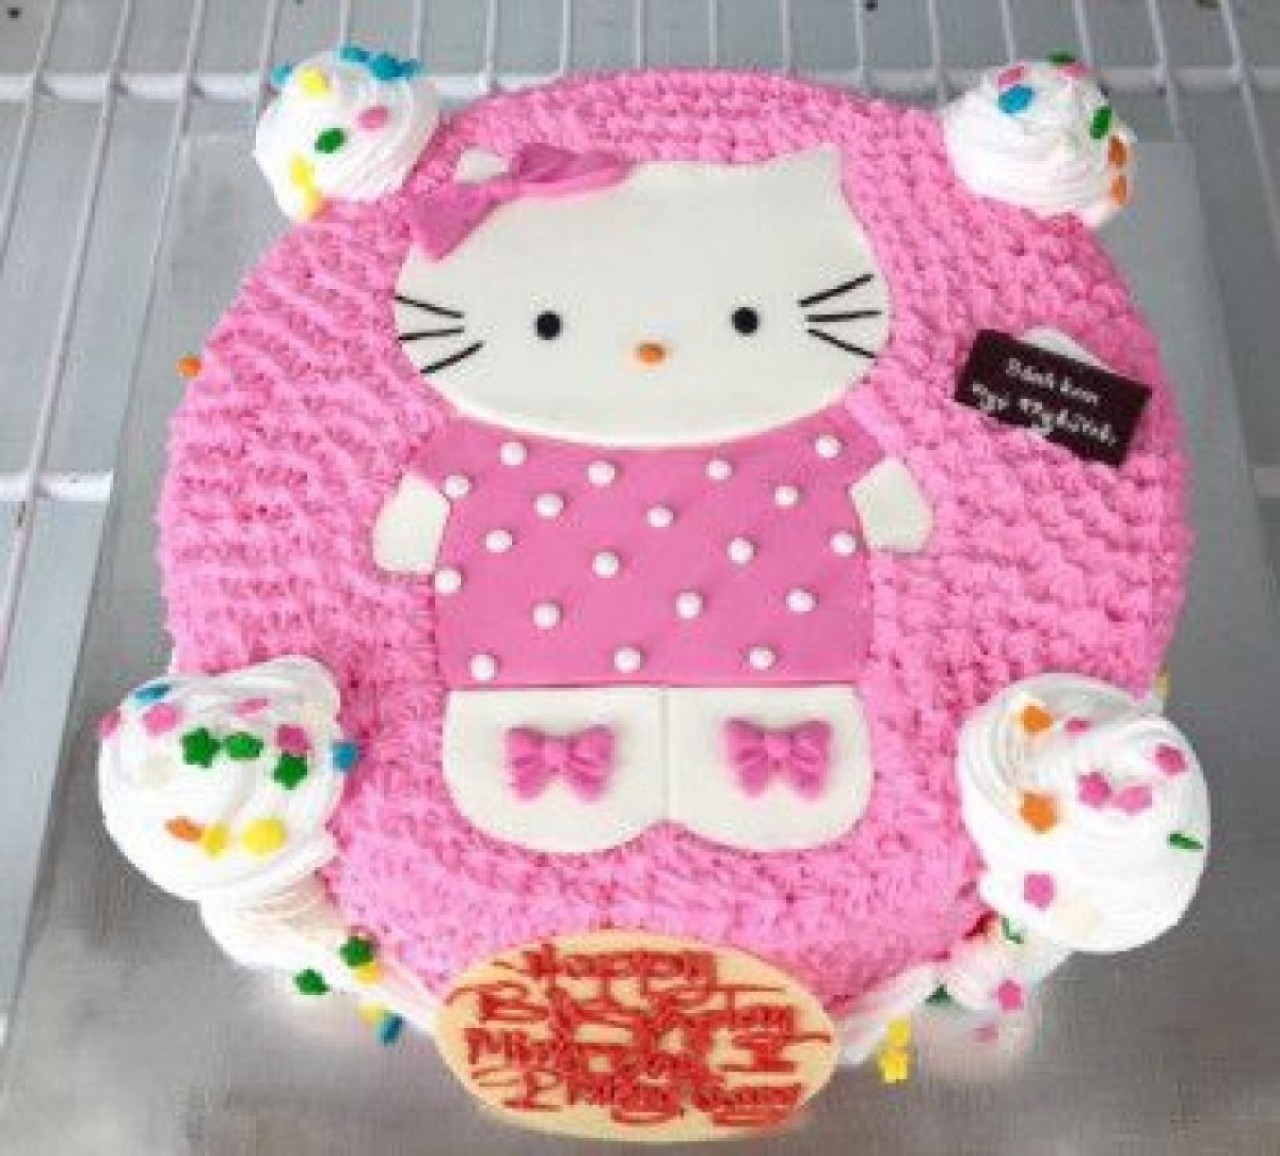 hinh-hello-kitty-488.jpg